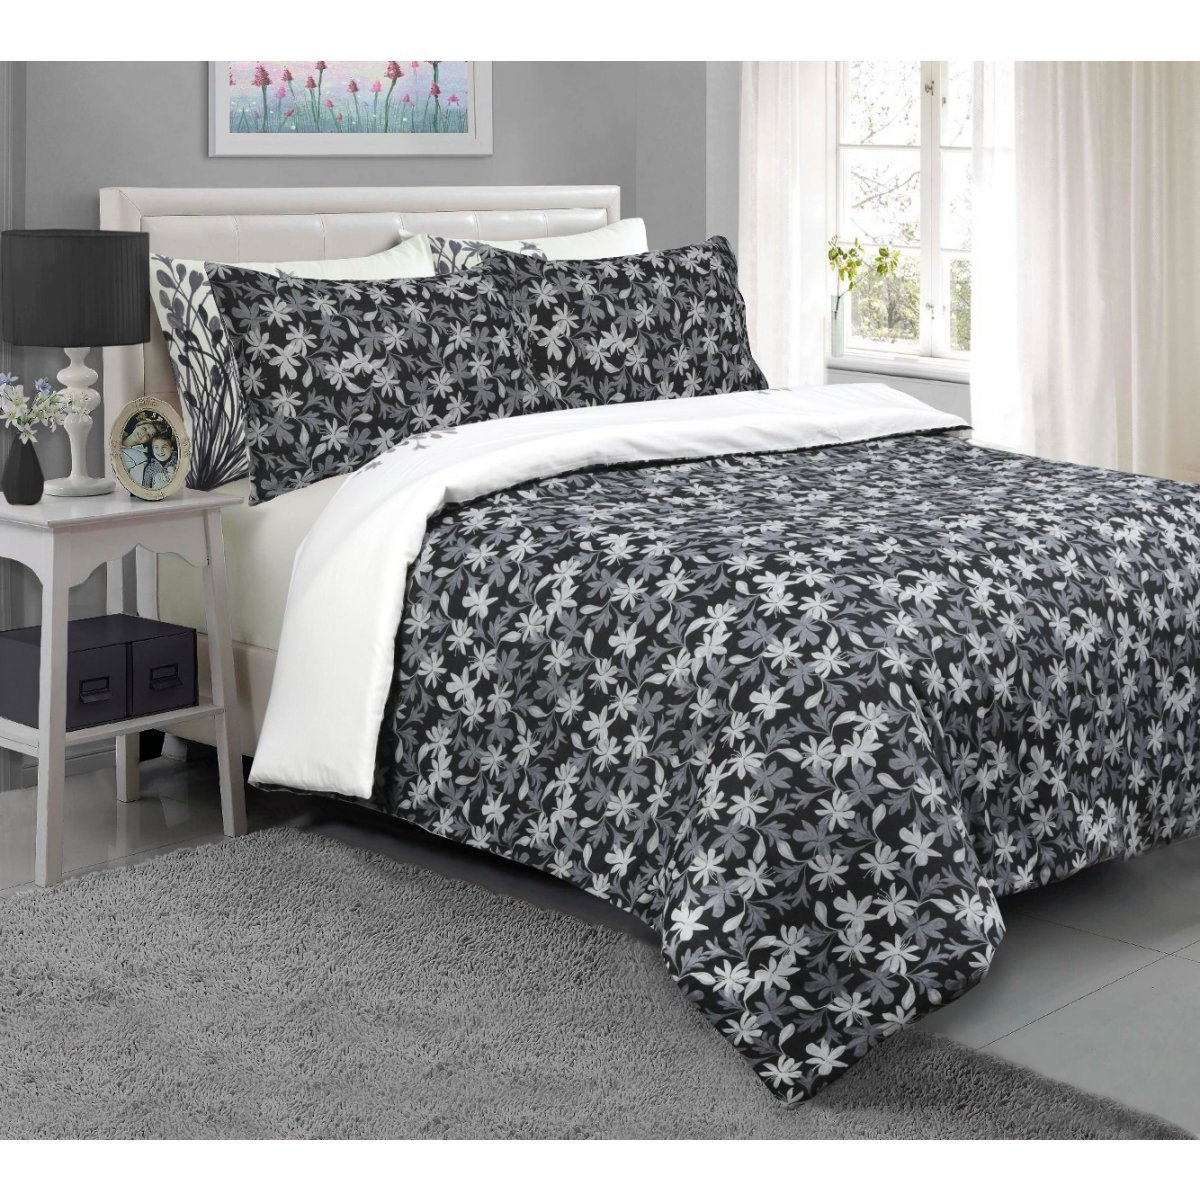 Meadow Grey Bedding - Reversible Duvet Cover and Pillowcase Set